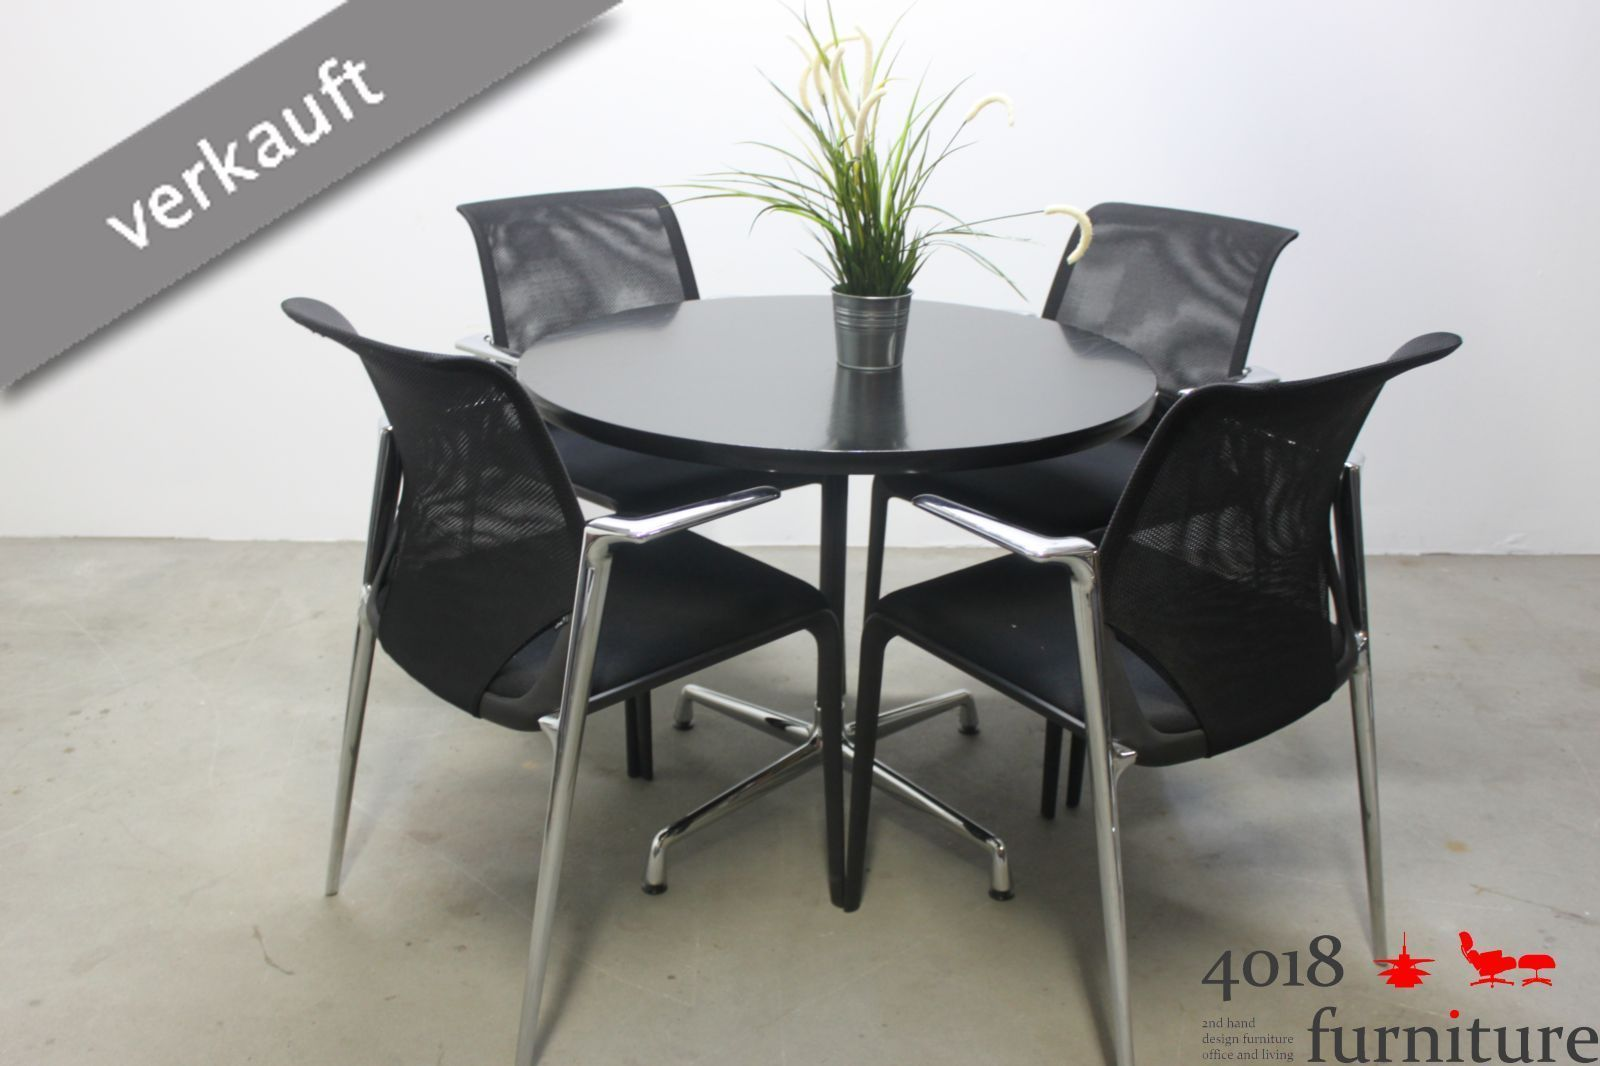 Vitra Charles Eames Contract Table schwarz 90cm Tisch chrom basic dark